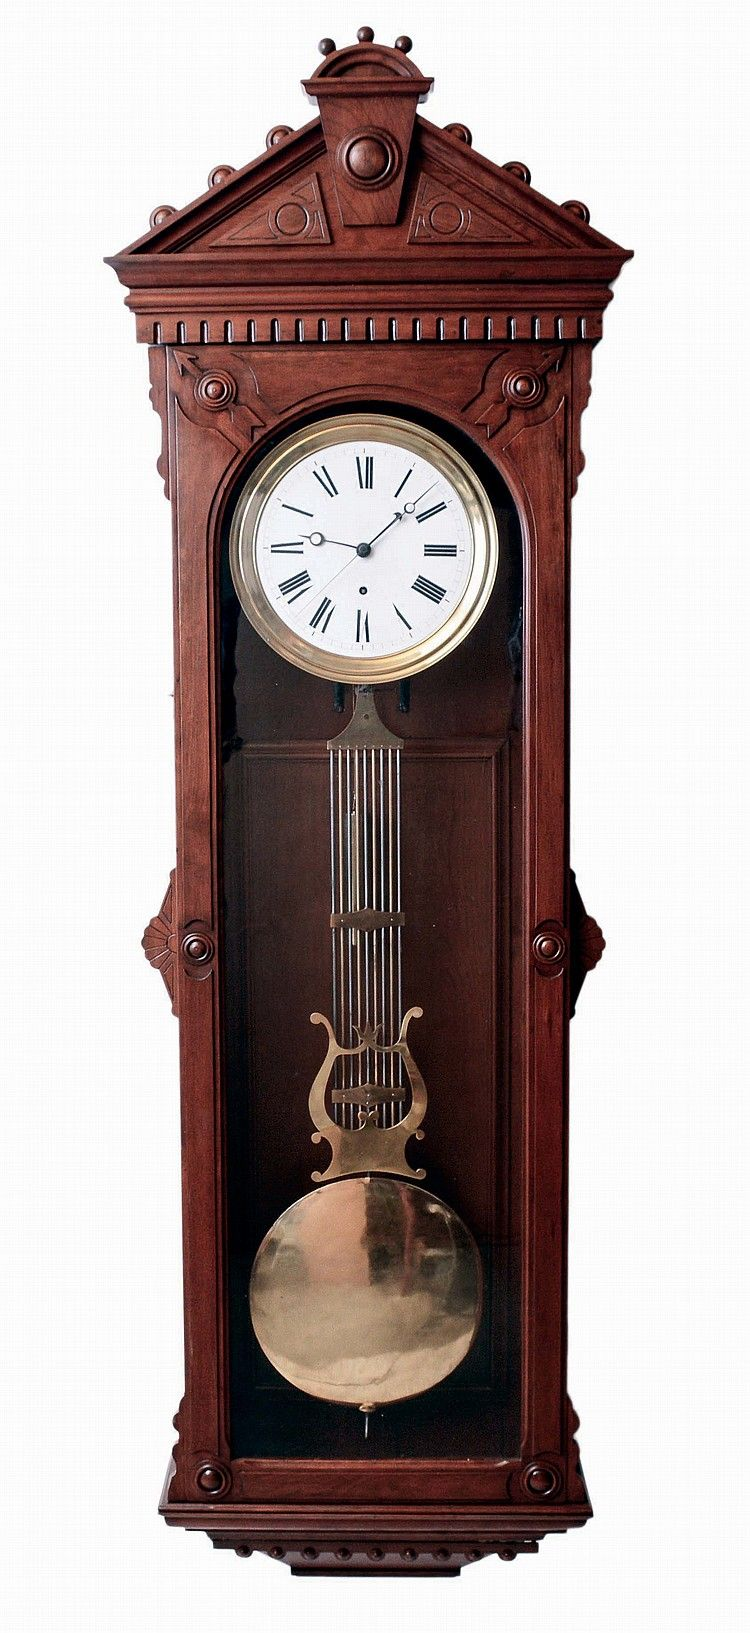 Large American Jeweler S Regulator Wall Clock 8 Days Time Only Weight Driven Swiss Movement With Pinwheel Escapement And Gri Wall Clock Clock Antique Clocks